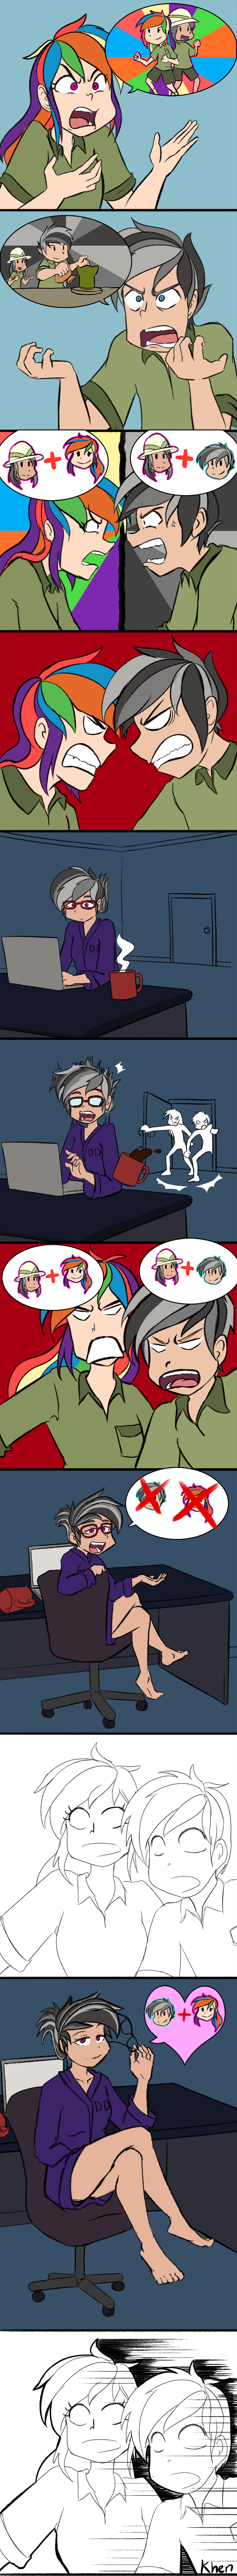 shipping,humanized,quibble pants,stranger than fan fiction,comic,daring do,rainbow dash